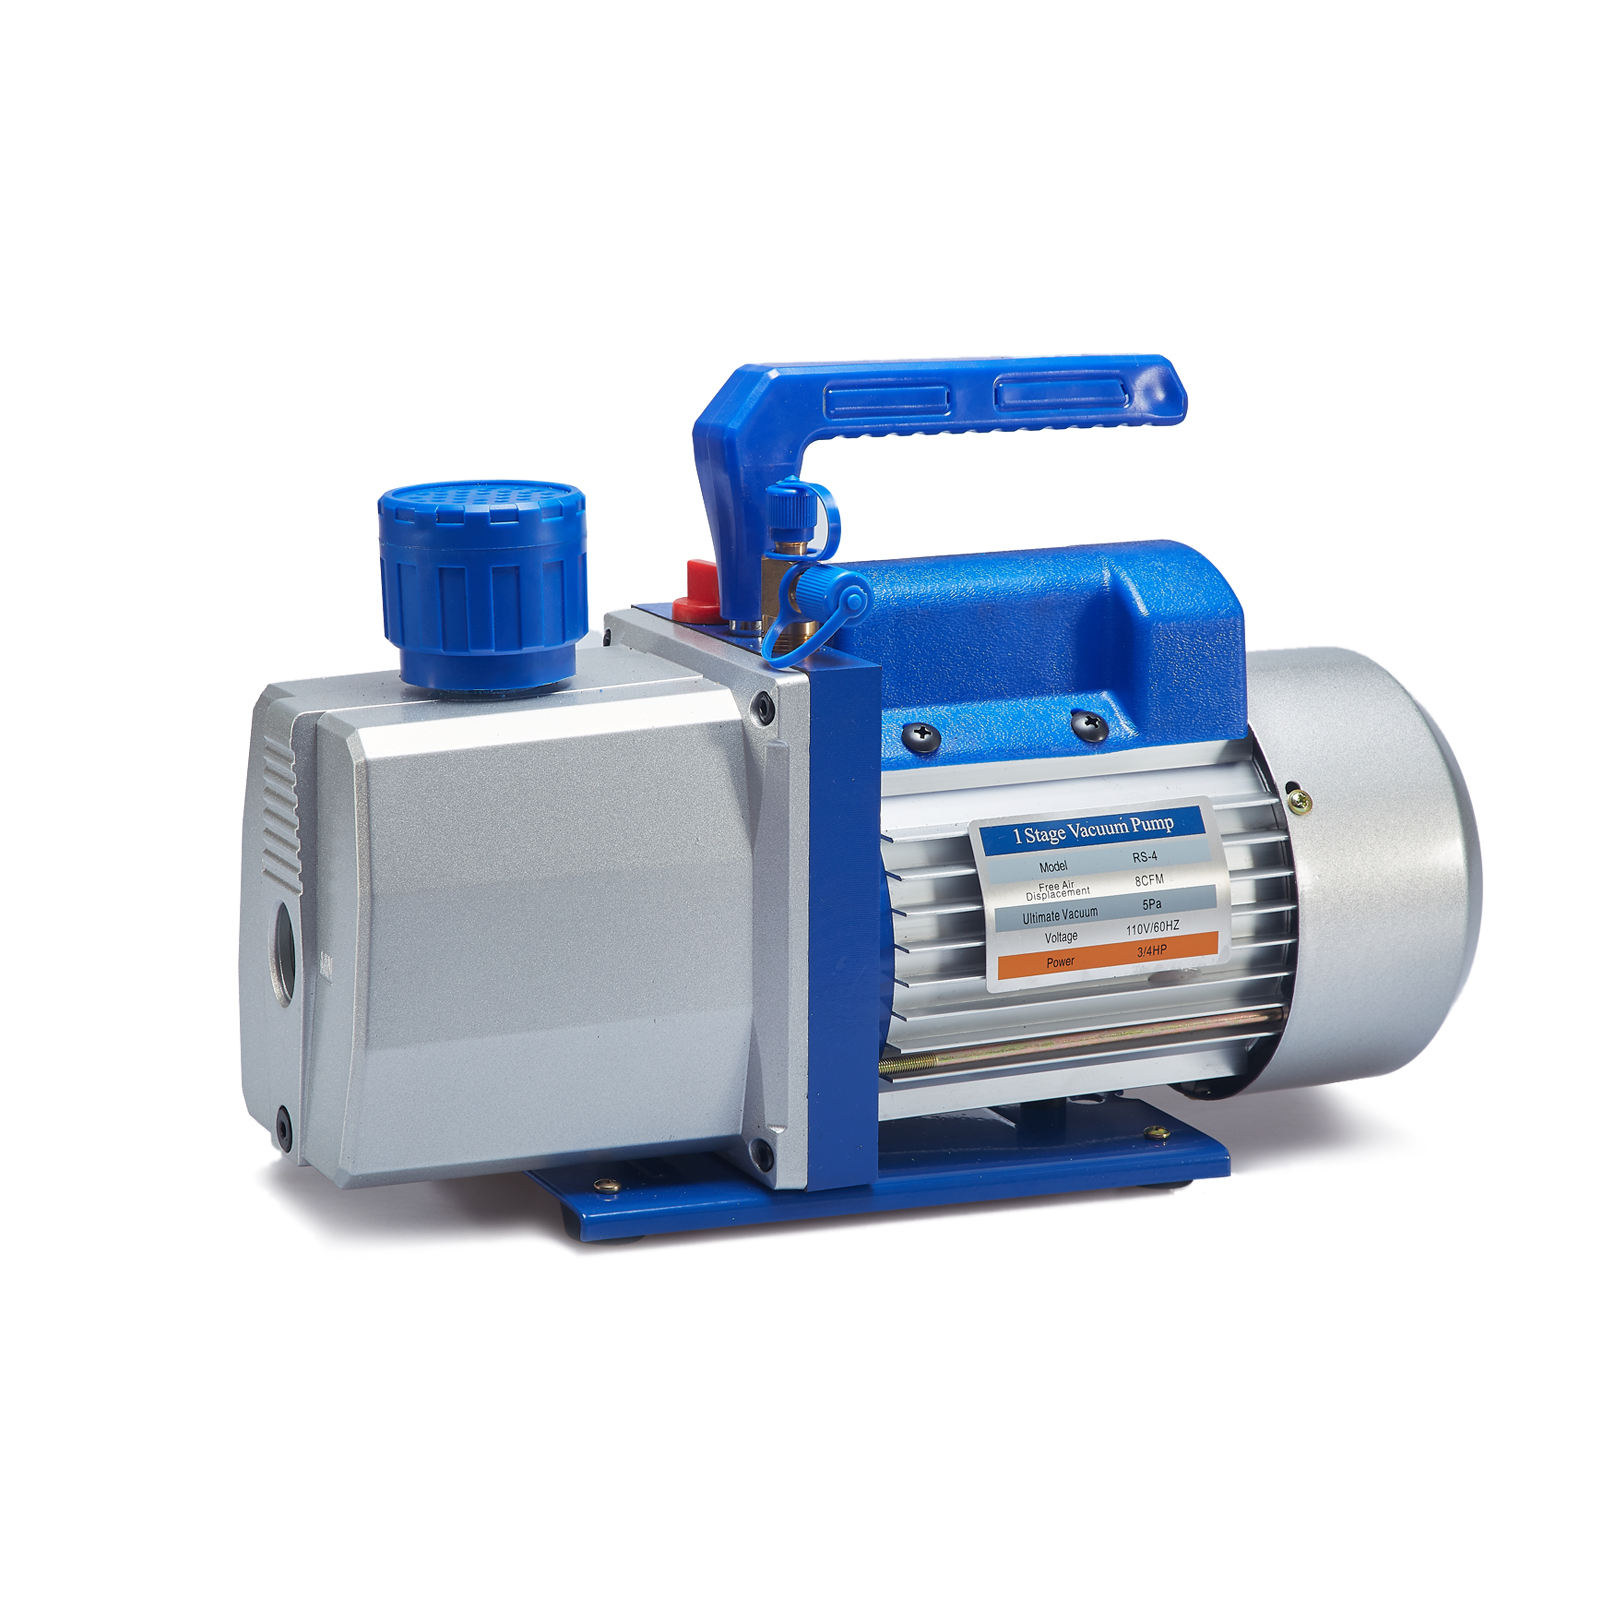 RS-6 one stage 6L/12CFM/5pa/ AC nash vacuum pump for whole sale